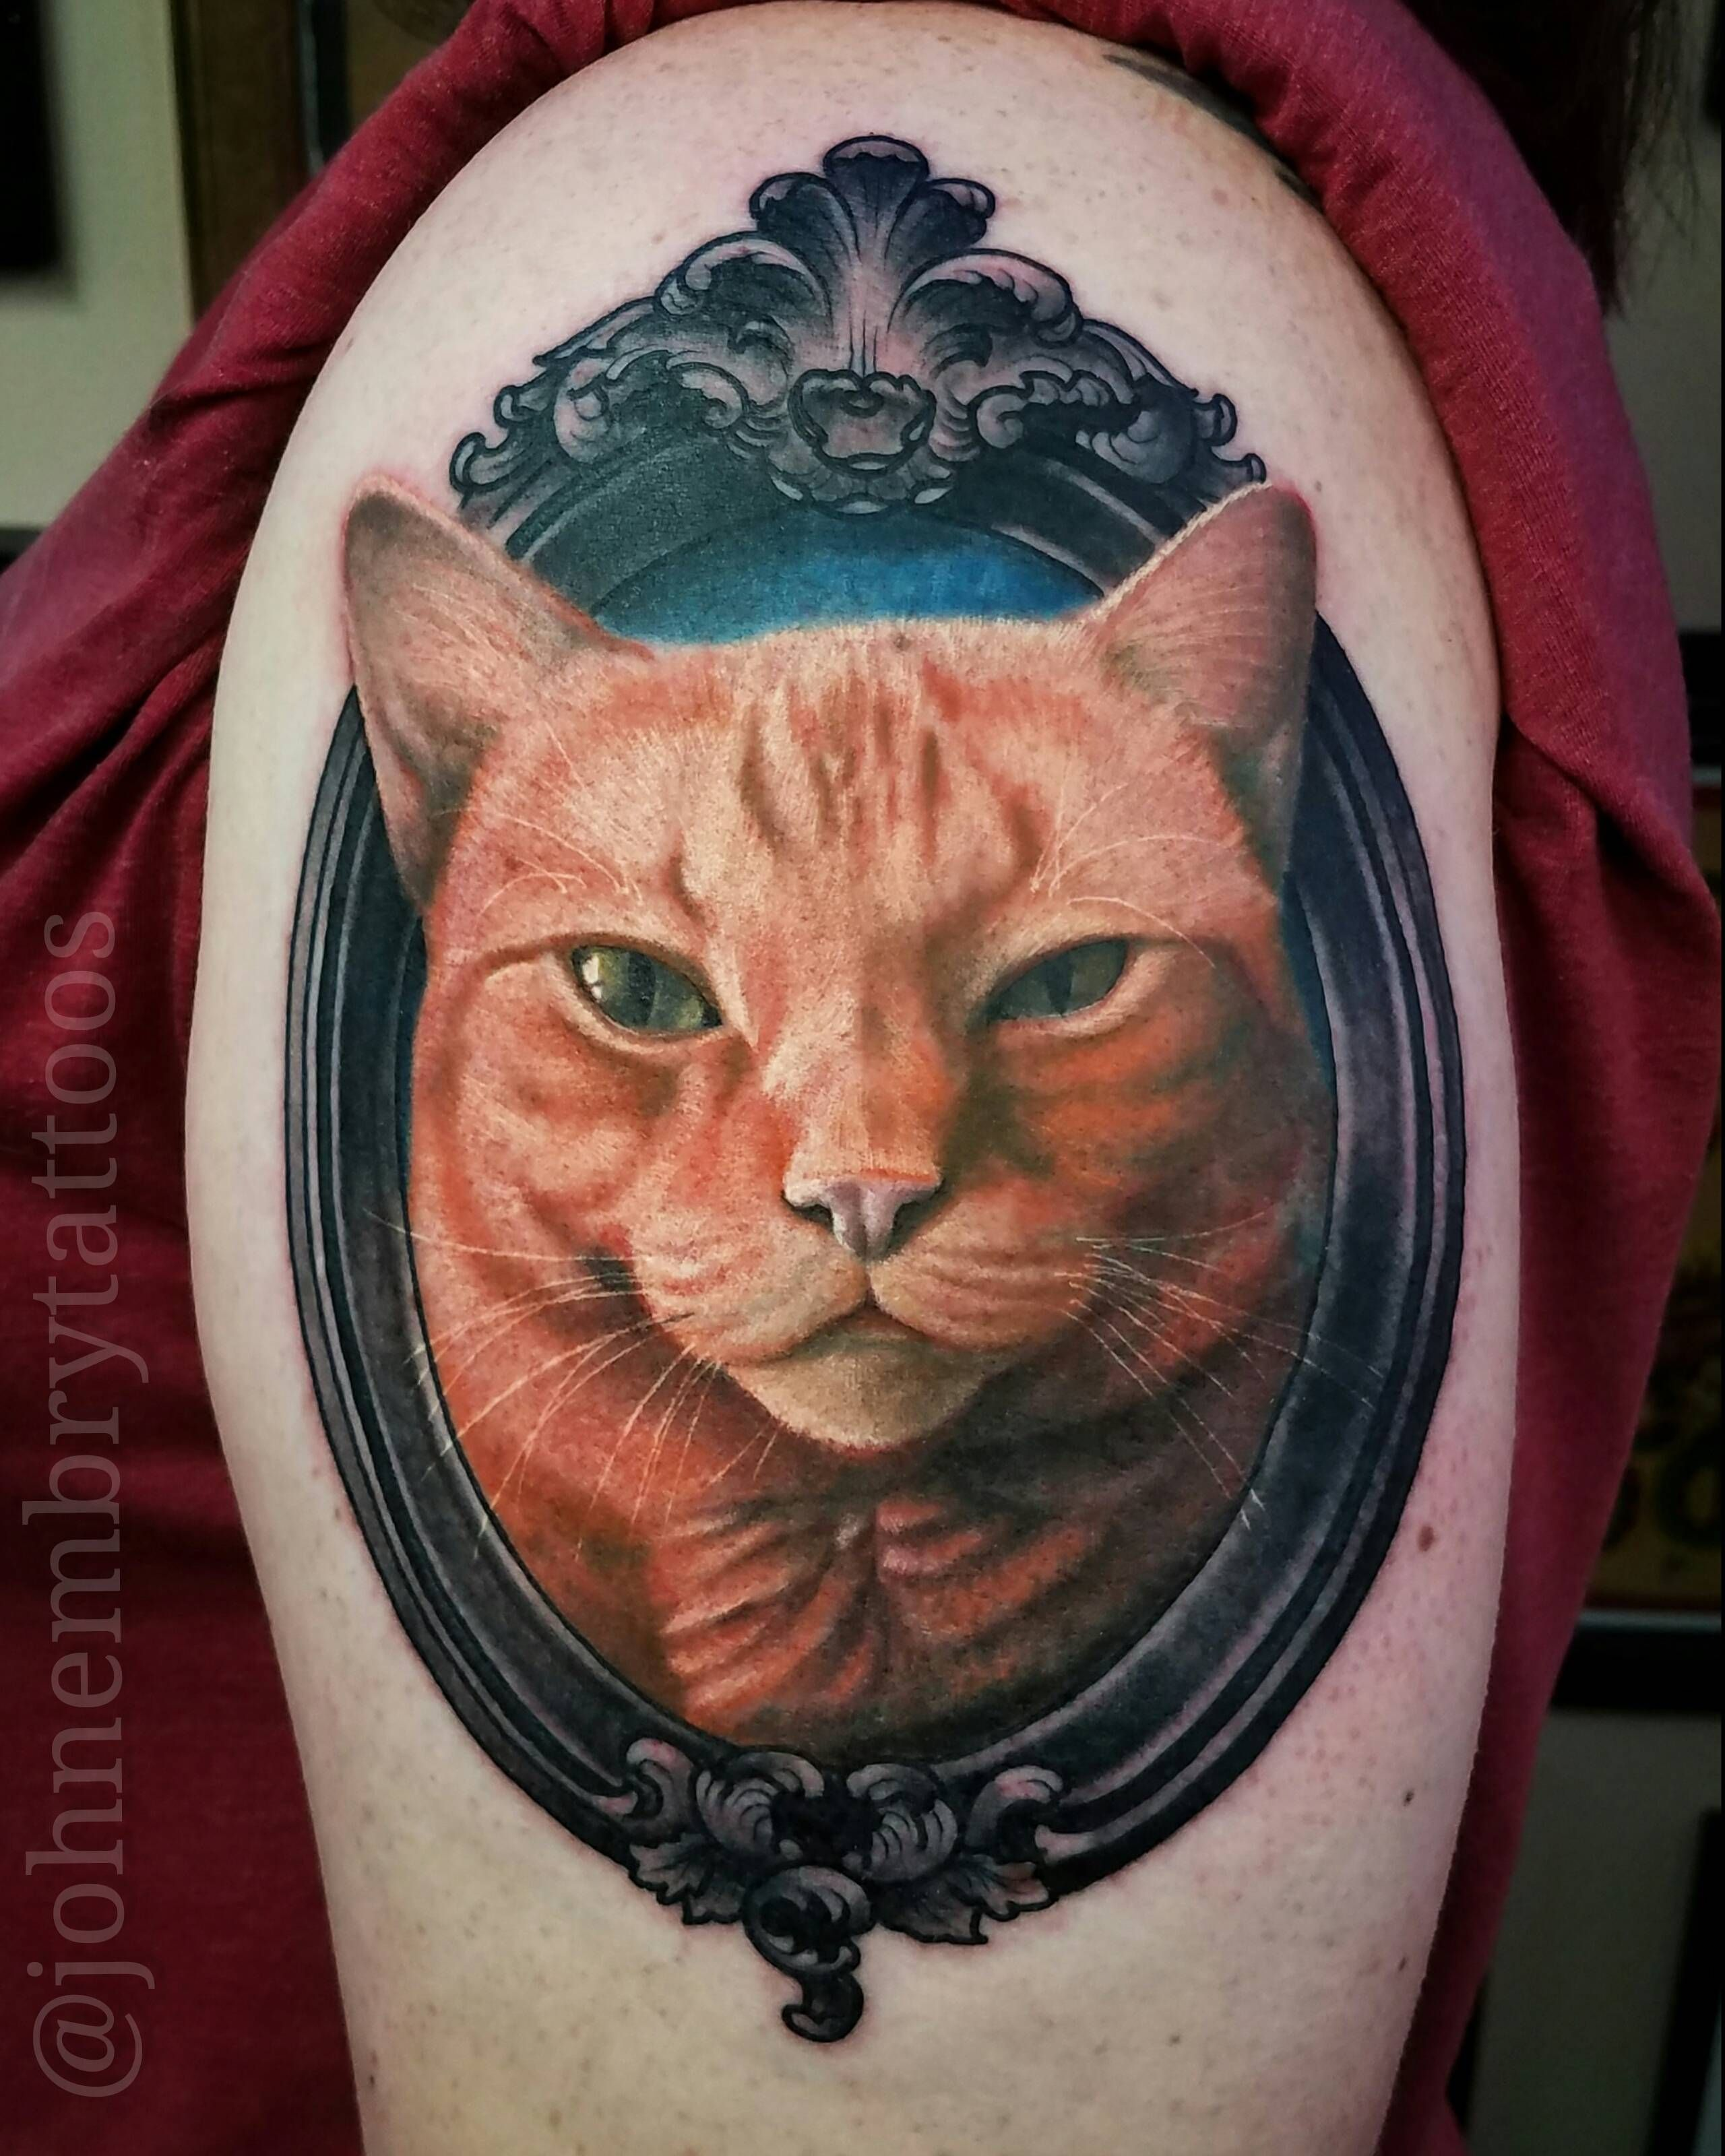 Thought you guys might appreciate this memorial cattoo I did recently. http://ift.tt/2qnltZd